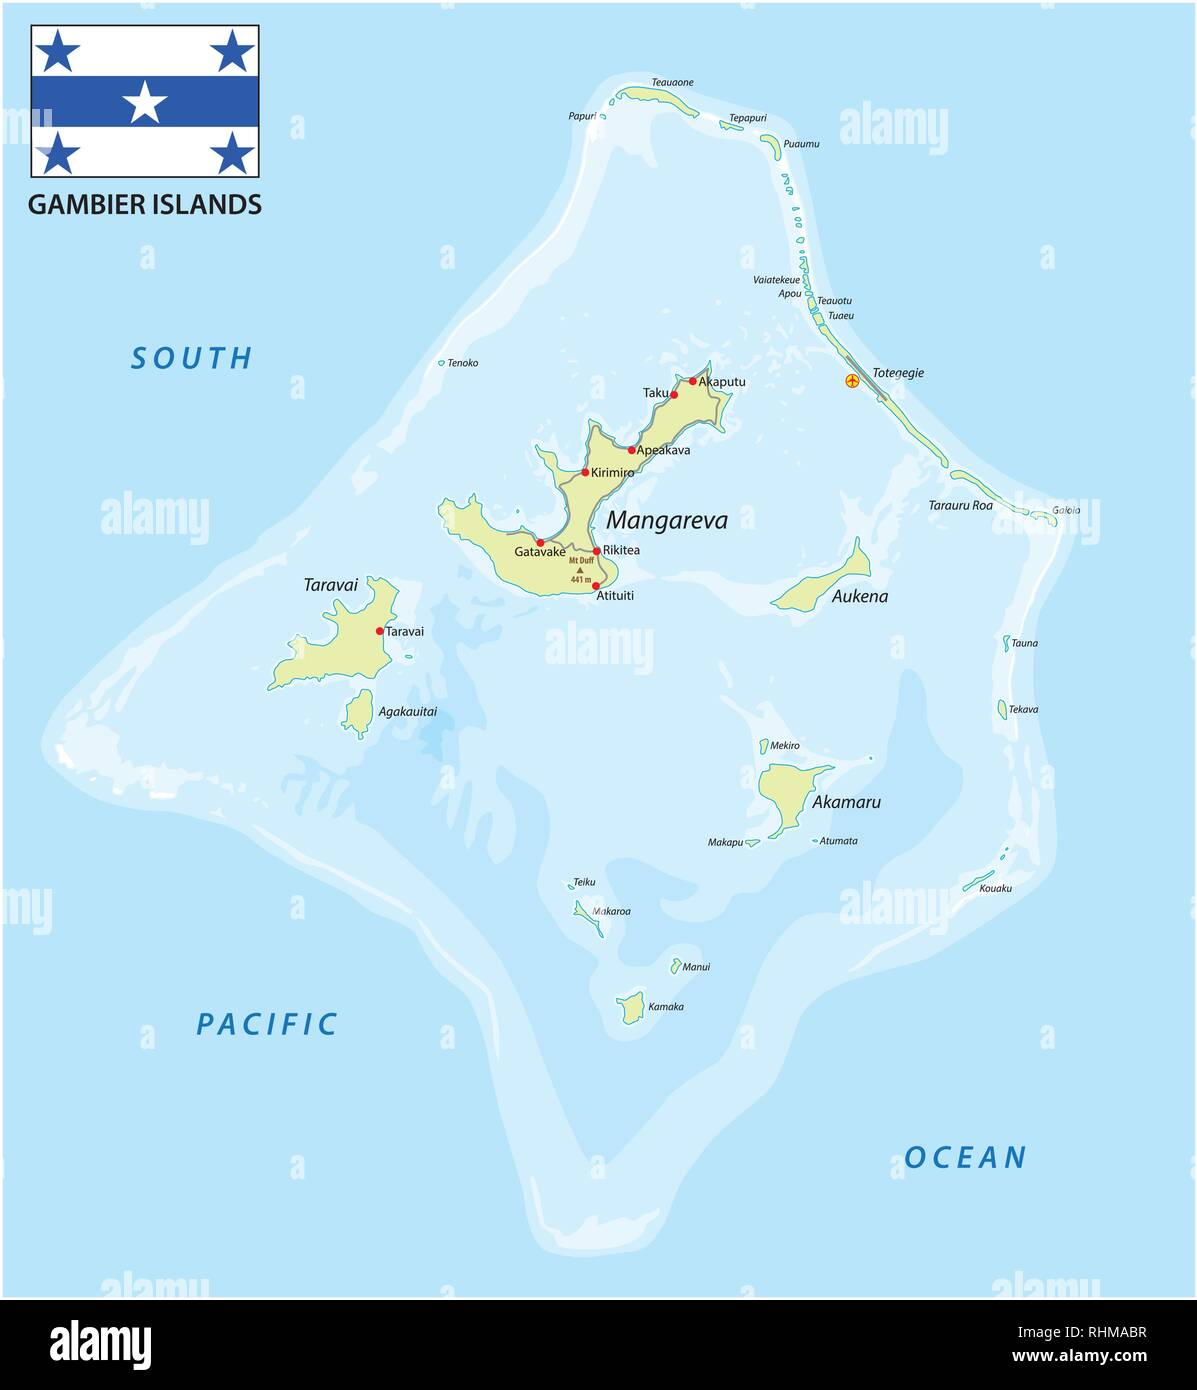 Gambier Islands vector map with flag, French Polynesia - Stock Image